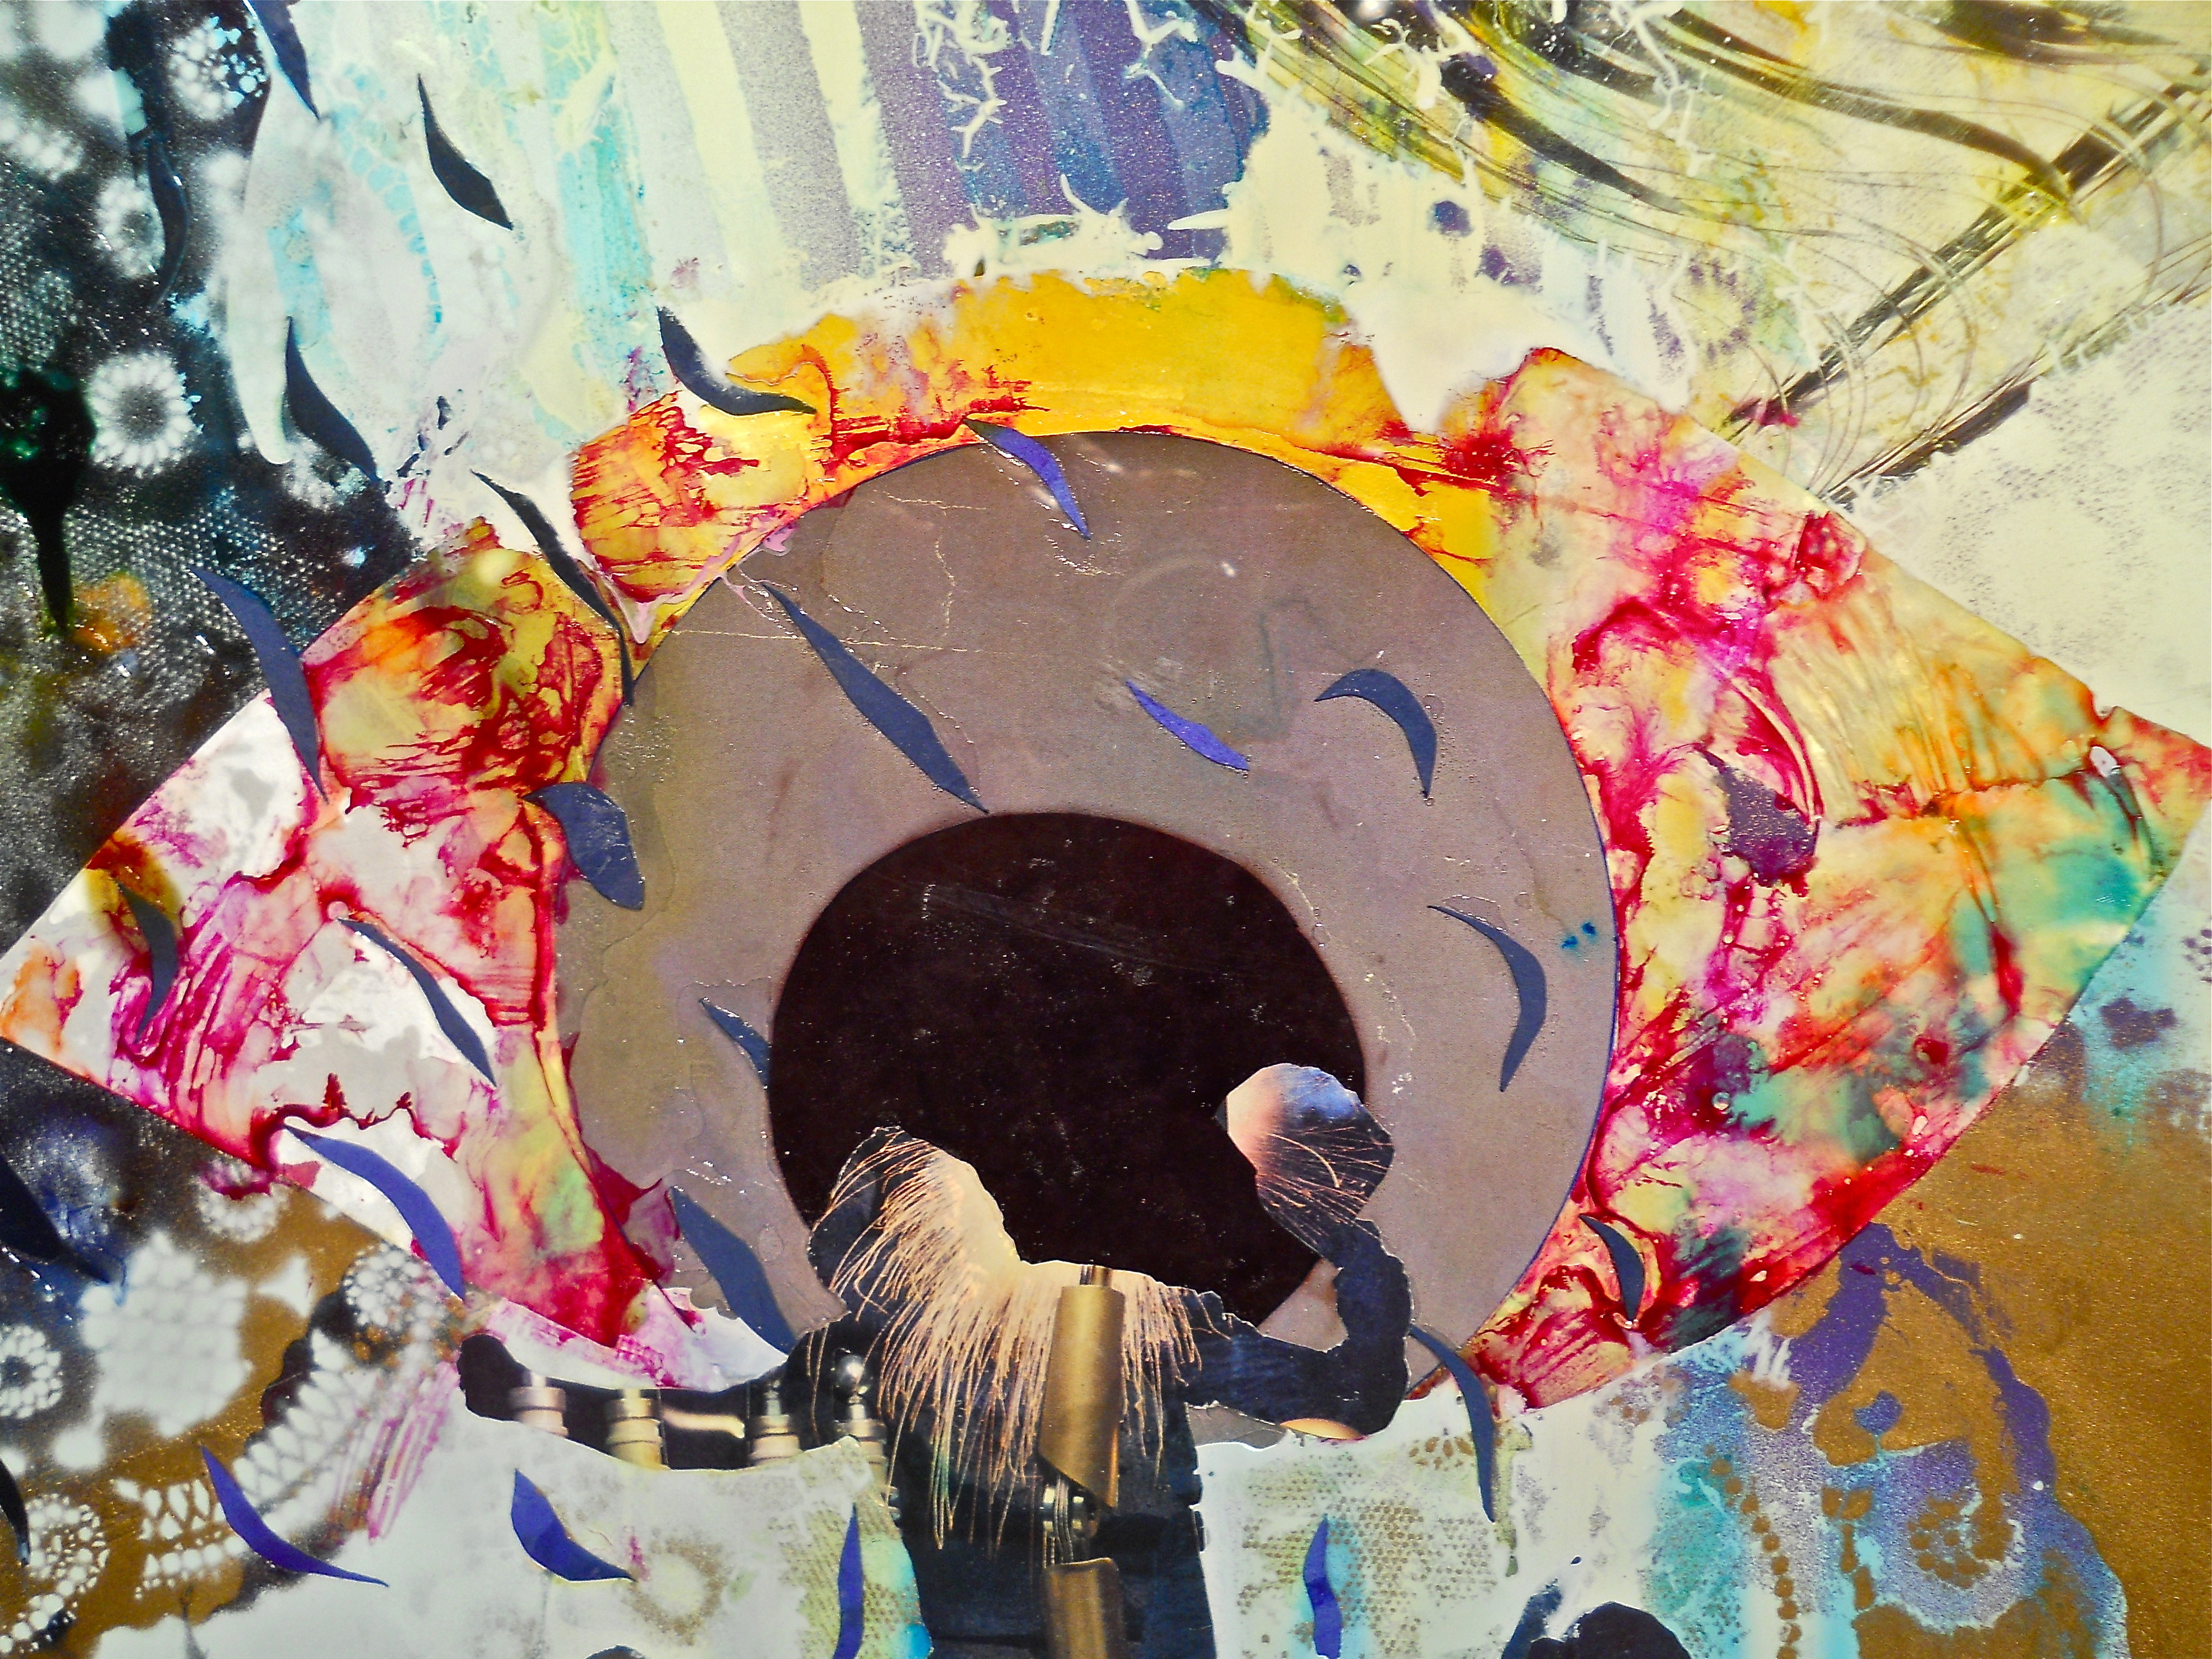 """Spoiled Vagrant Eye"" (detail) 2013 Collage-painting on large glass, approximately 4x3 feet, for sale; $800"